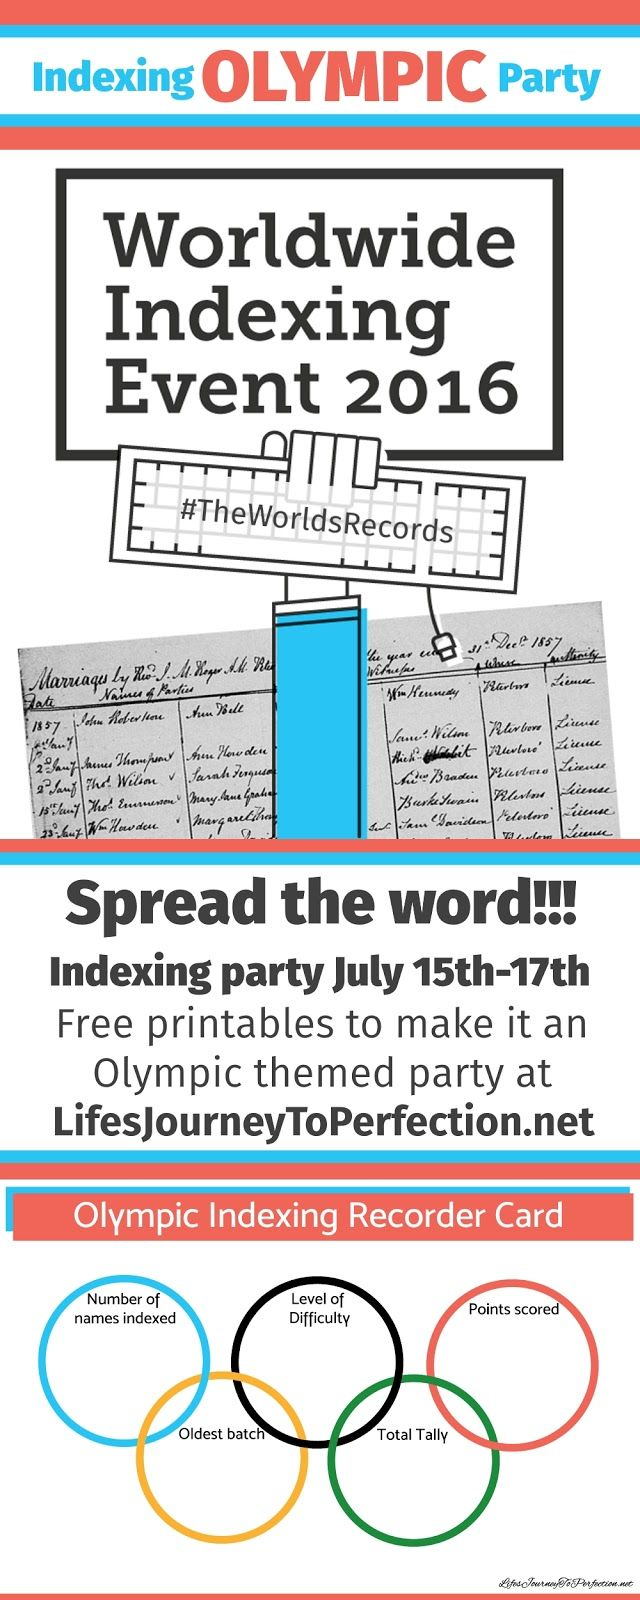 Indexing Olympic Party...A Worldwide Indexing Event!